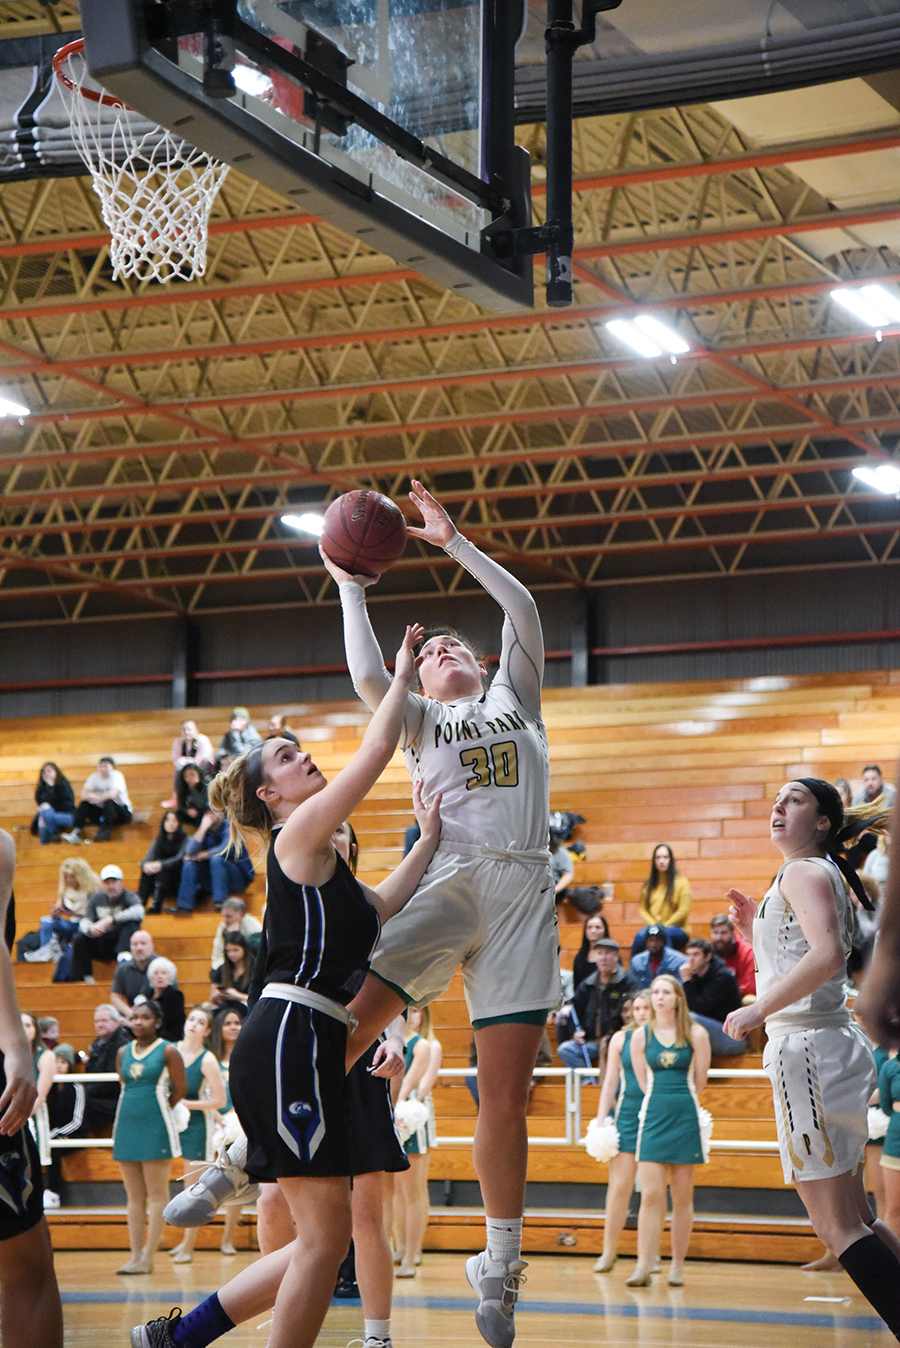 Senior power forward Sam Weir goes up for a shot against a defender during Saturday's matchup against Ohio Christian. In this game, Weir put up 30 points, which is one away from tying her career-high, 17 rebounds, which is three away from tying a career-high, and five blocks.